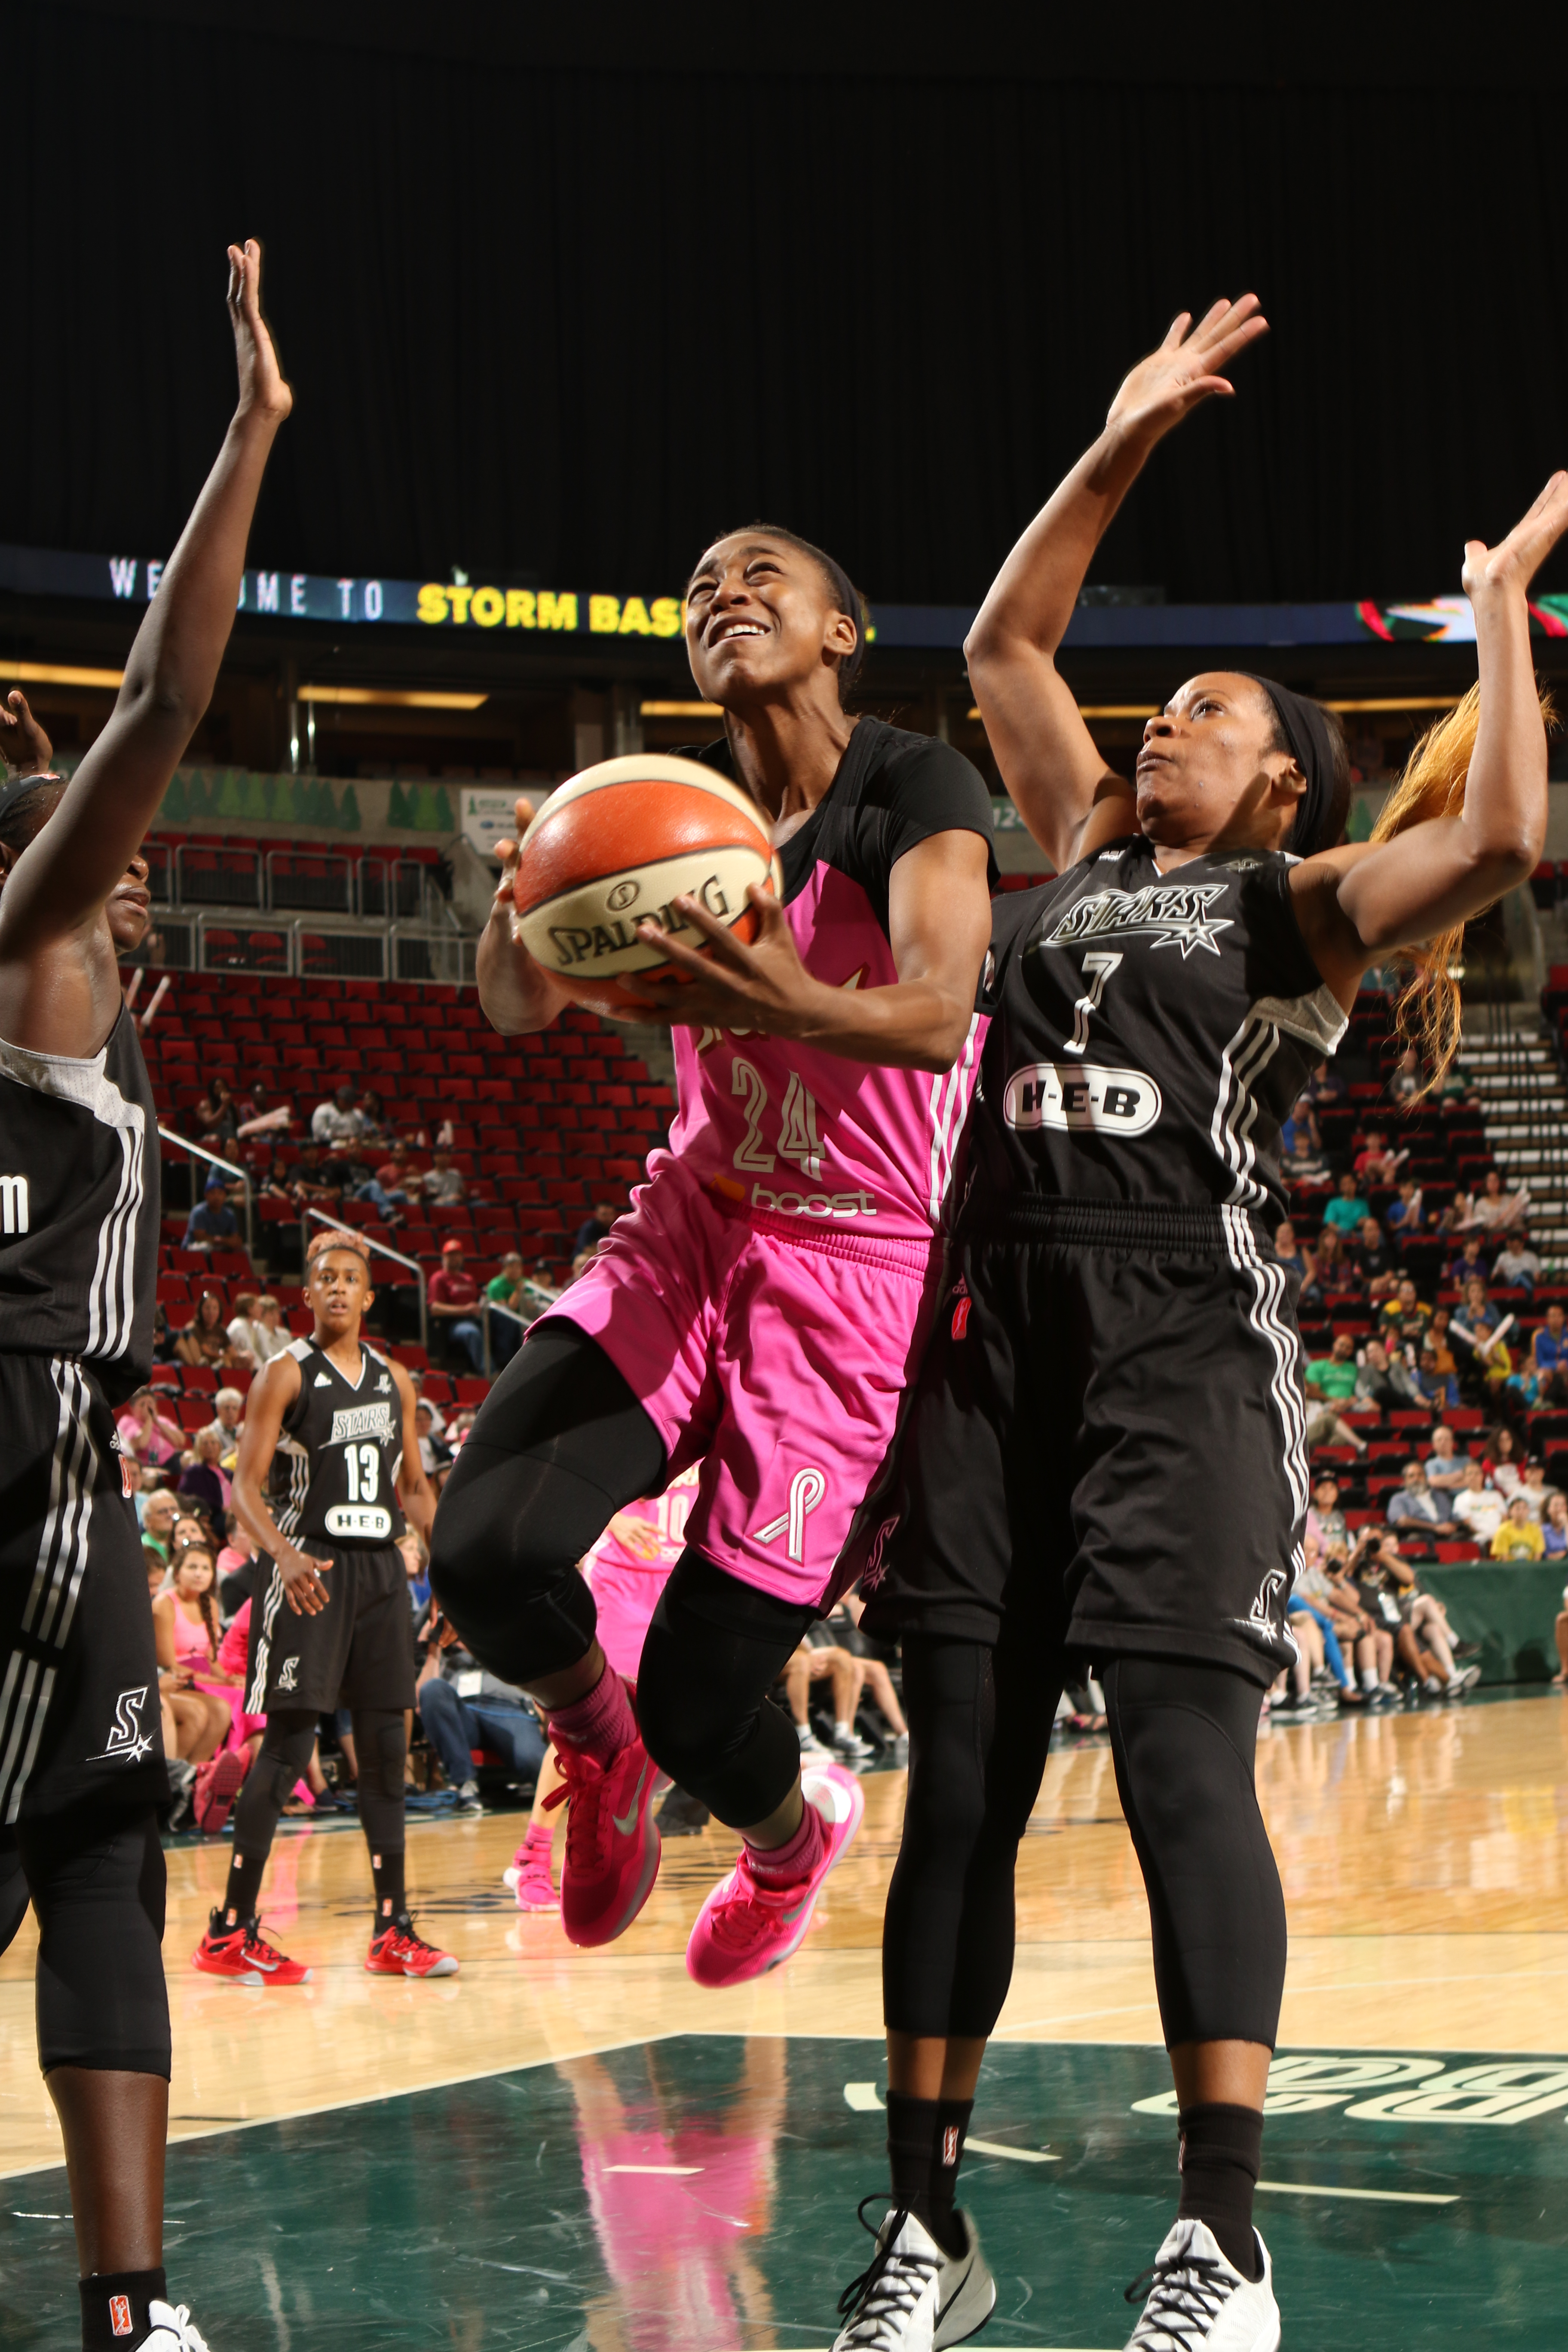 SEATTLE, WA - AUGUST 16: Jewell Loyd #24 of the Seattle Storm goes for the lay up against Jia Perkins #7 of the San Antonio Stars on August 16, 2015 at Key Arena in Seattle, Washington. (Photo by Joshua Huston/NBAE via Getty Images)